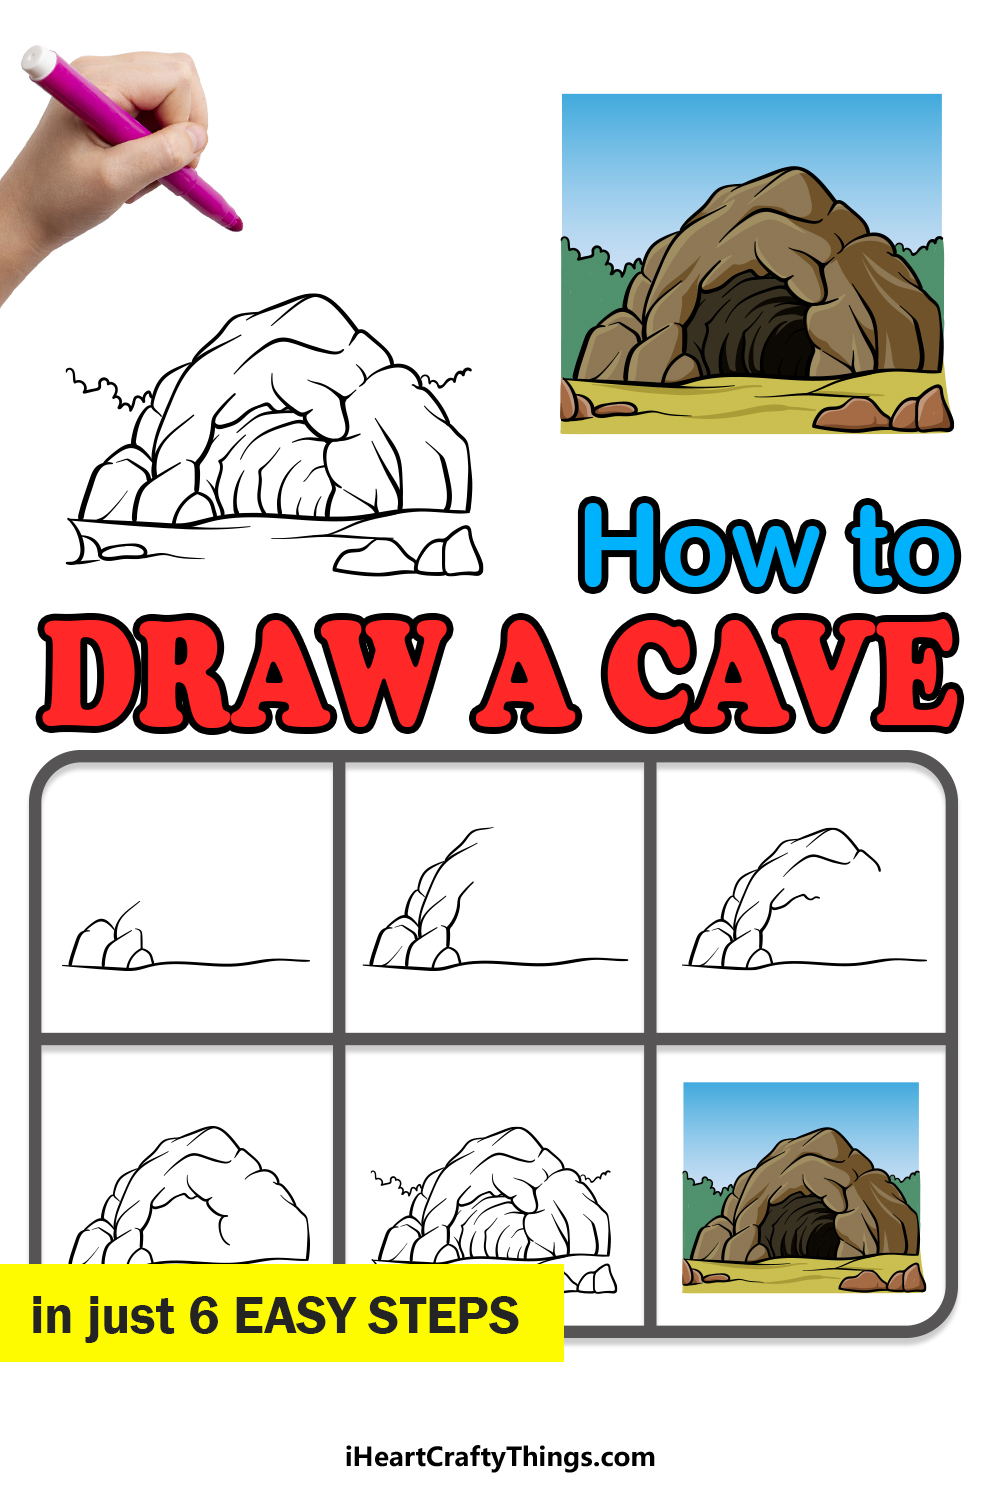 how to draw a cave in 6 easy steps